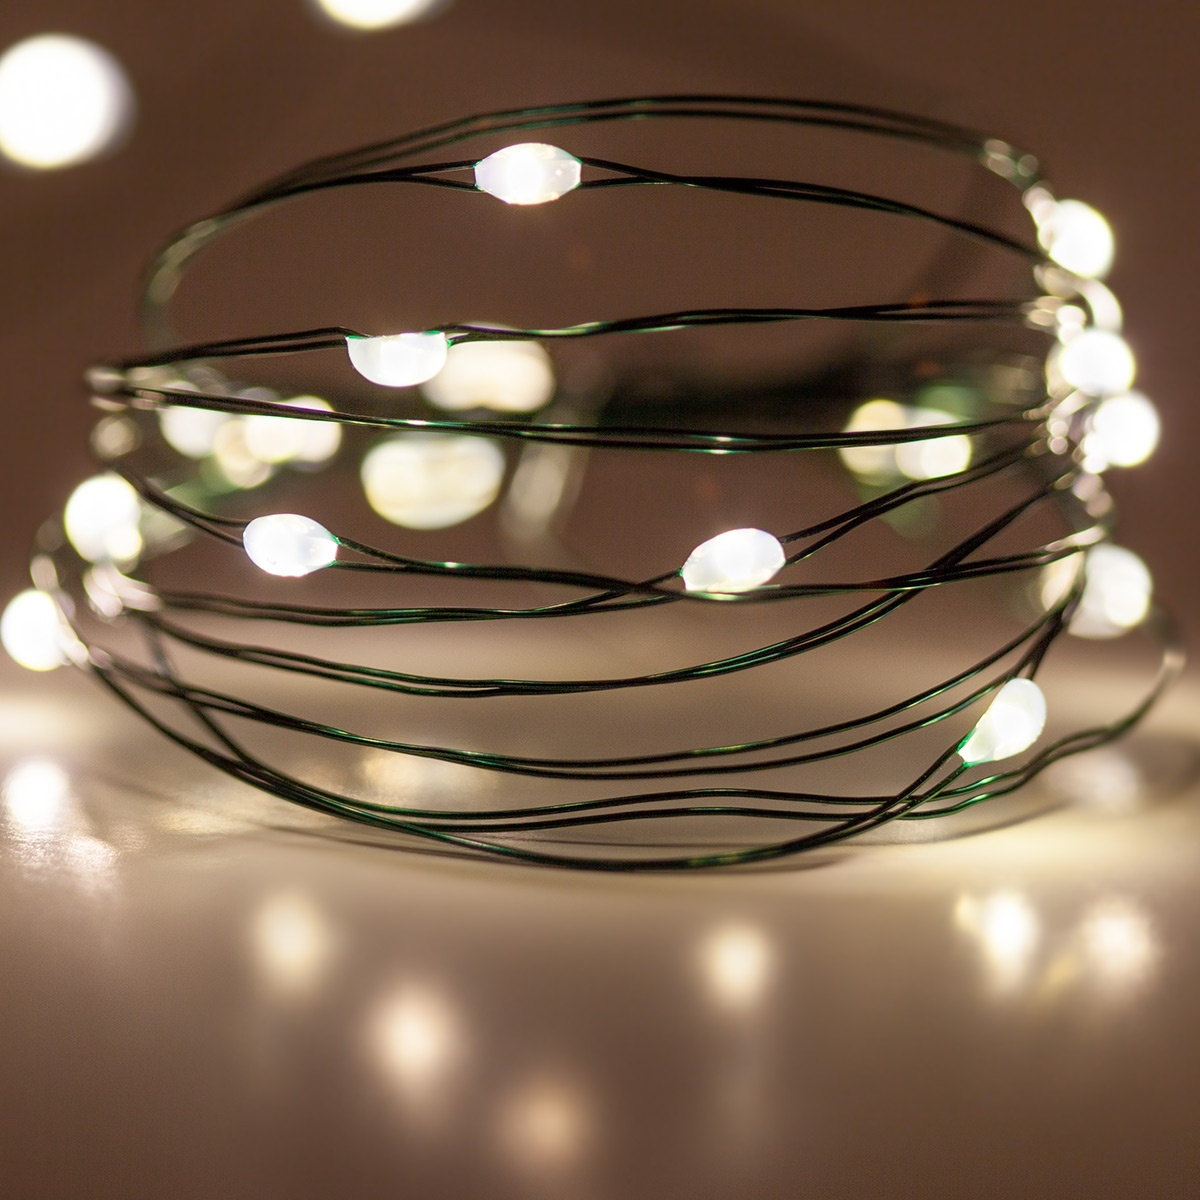 Battery Operated Lights   18 Warm White Battery Operated LED Fairy Lights,  Green Wire